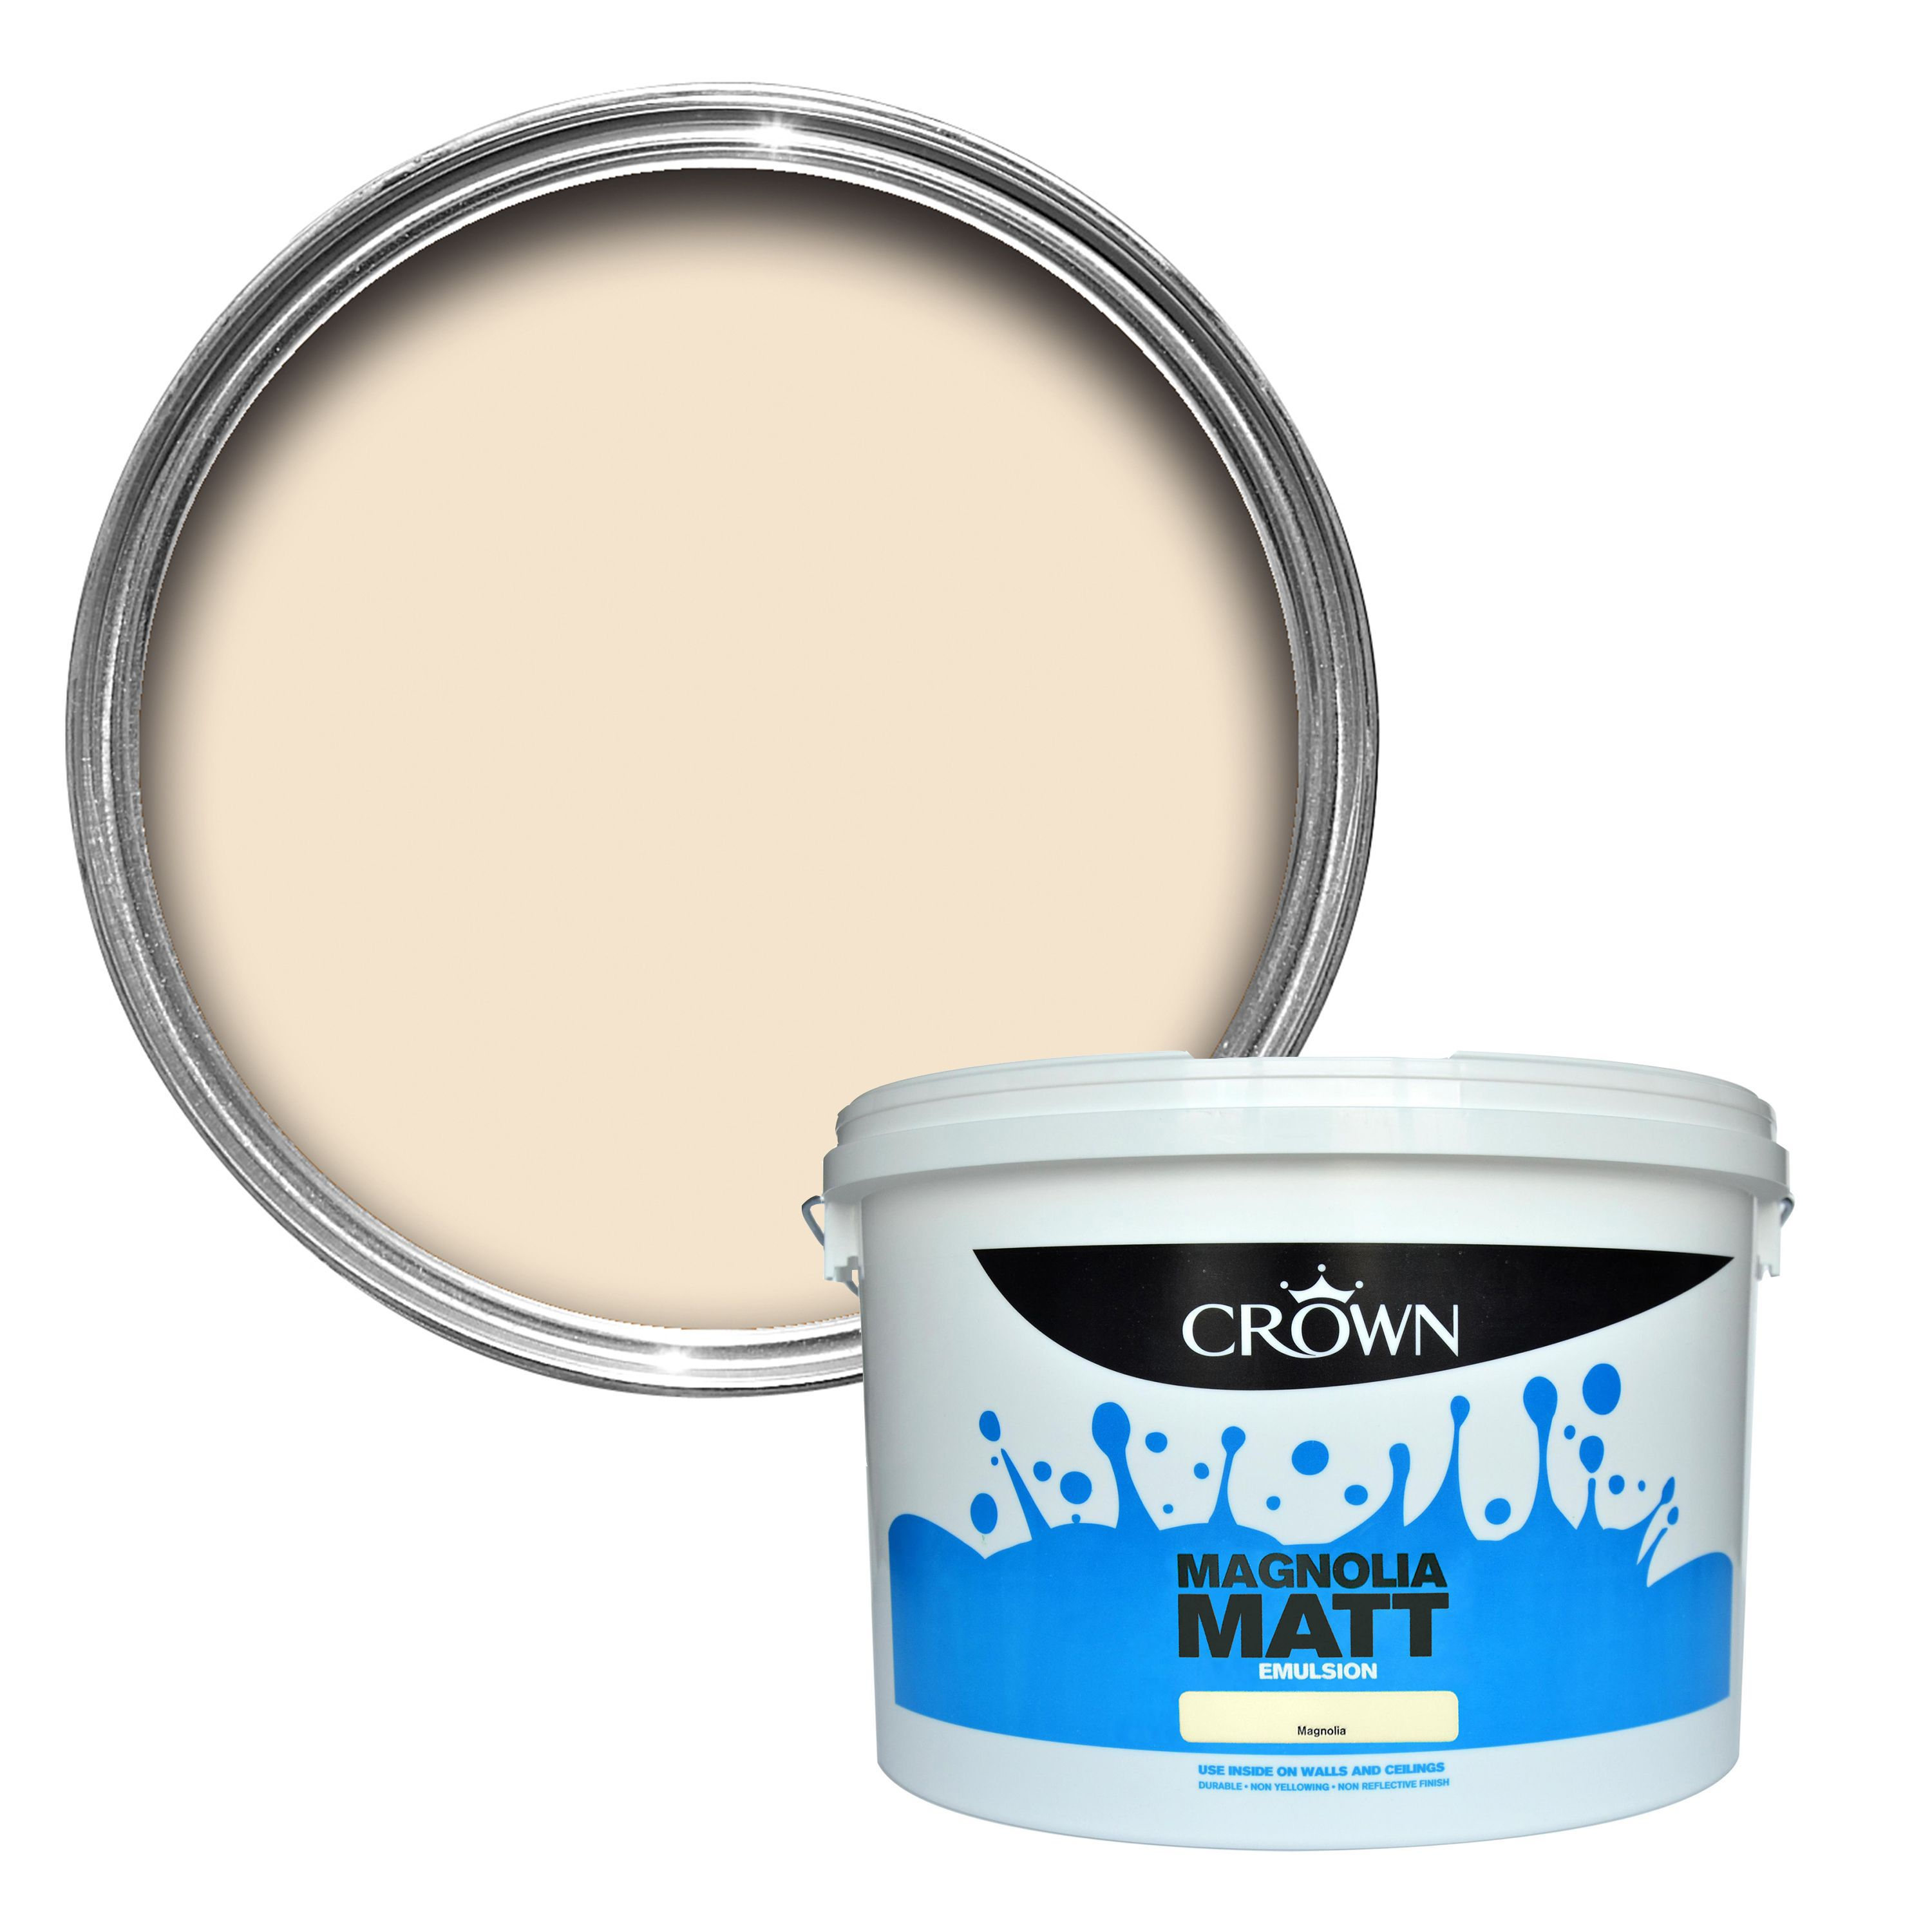 Crown Magnolia Matt Emulsion Paint 10l